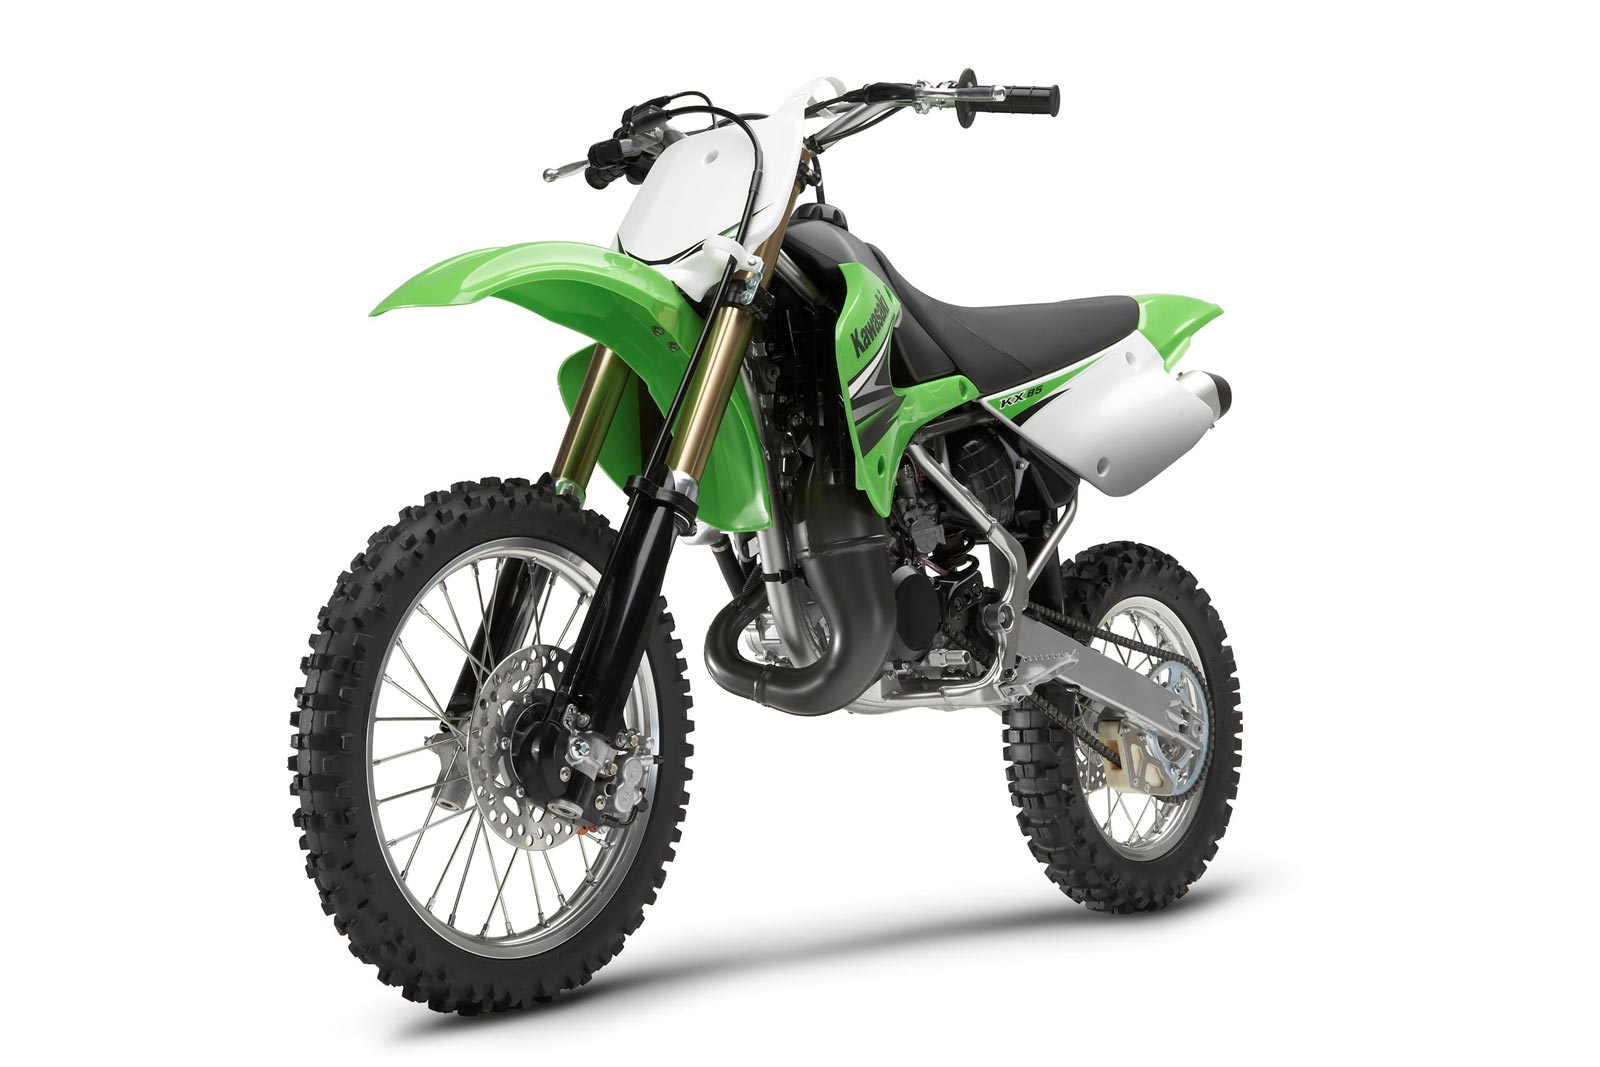 kawasaki kx 85 ii pics specs and list of seriess by year. Black Bedroom Furniture Sets. Home Design Ideas